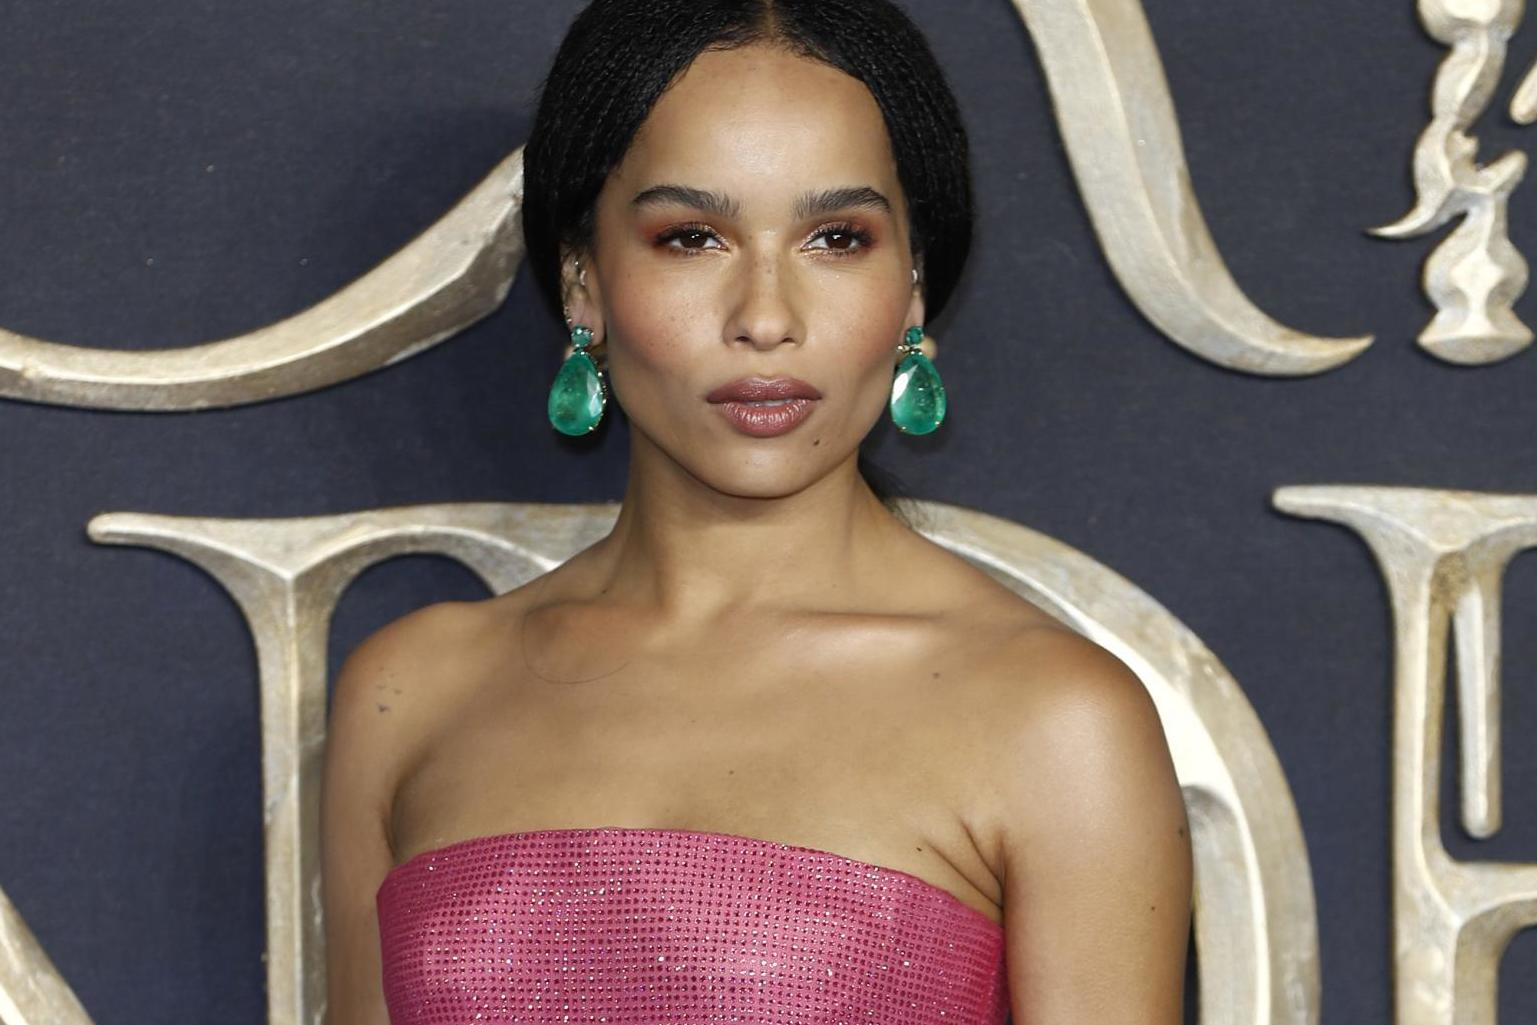 Zoe Kravitz claims she was 'attacked' by Lily Allen, denies kiss det…